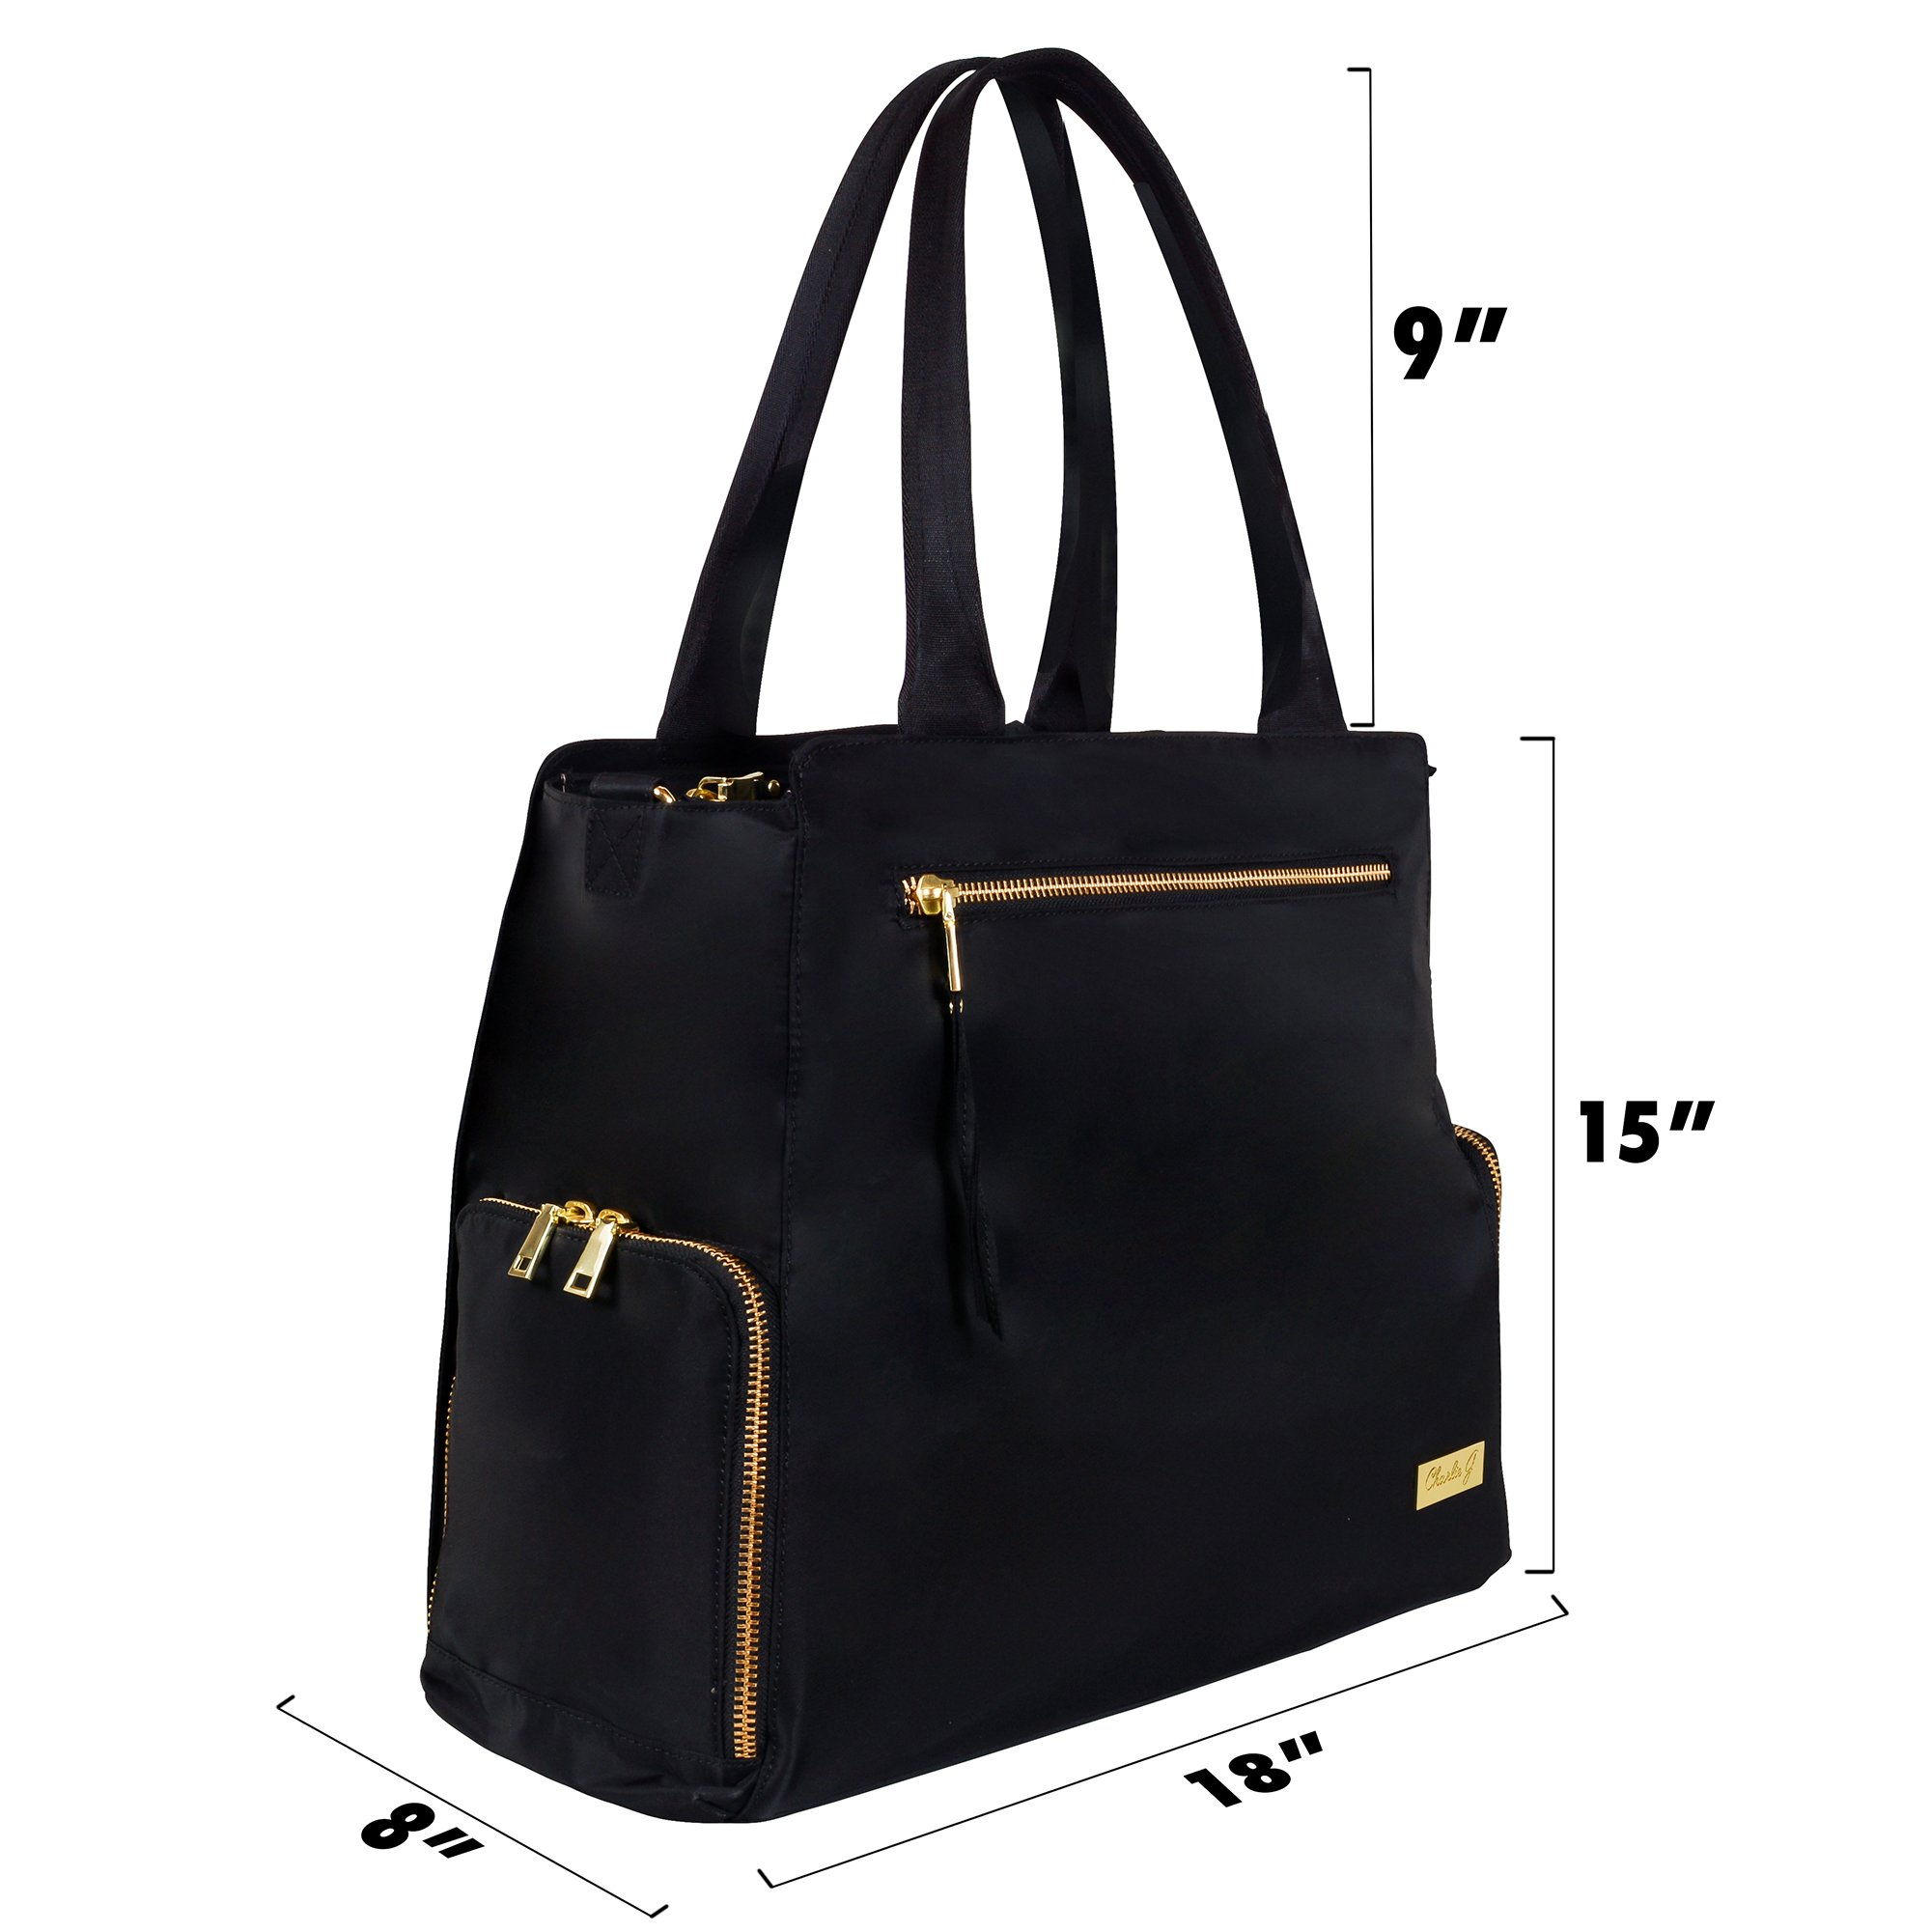 The New Yorker Breast Pump Bag by Charlie G, Black/Gold (Large) by Charlie G Bags (Image #3)